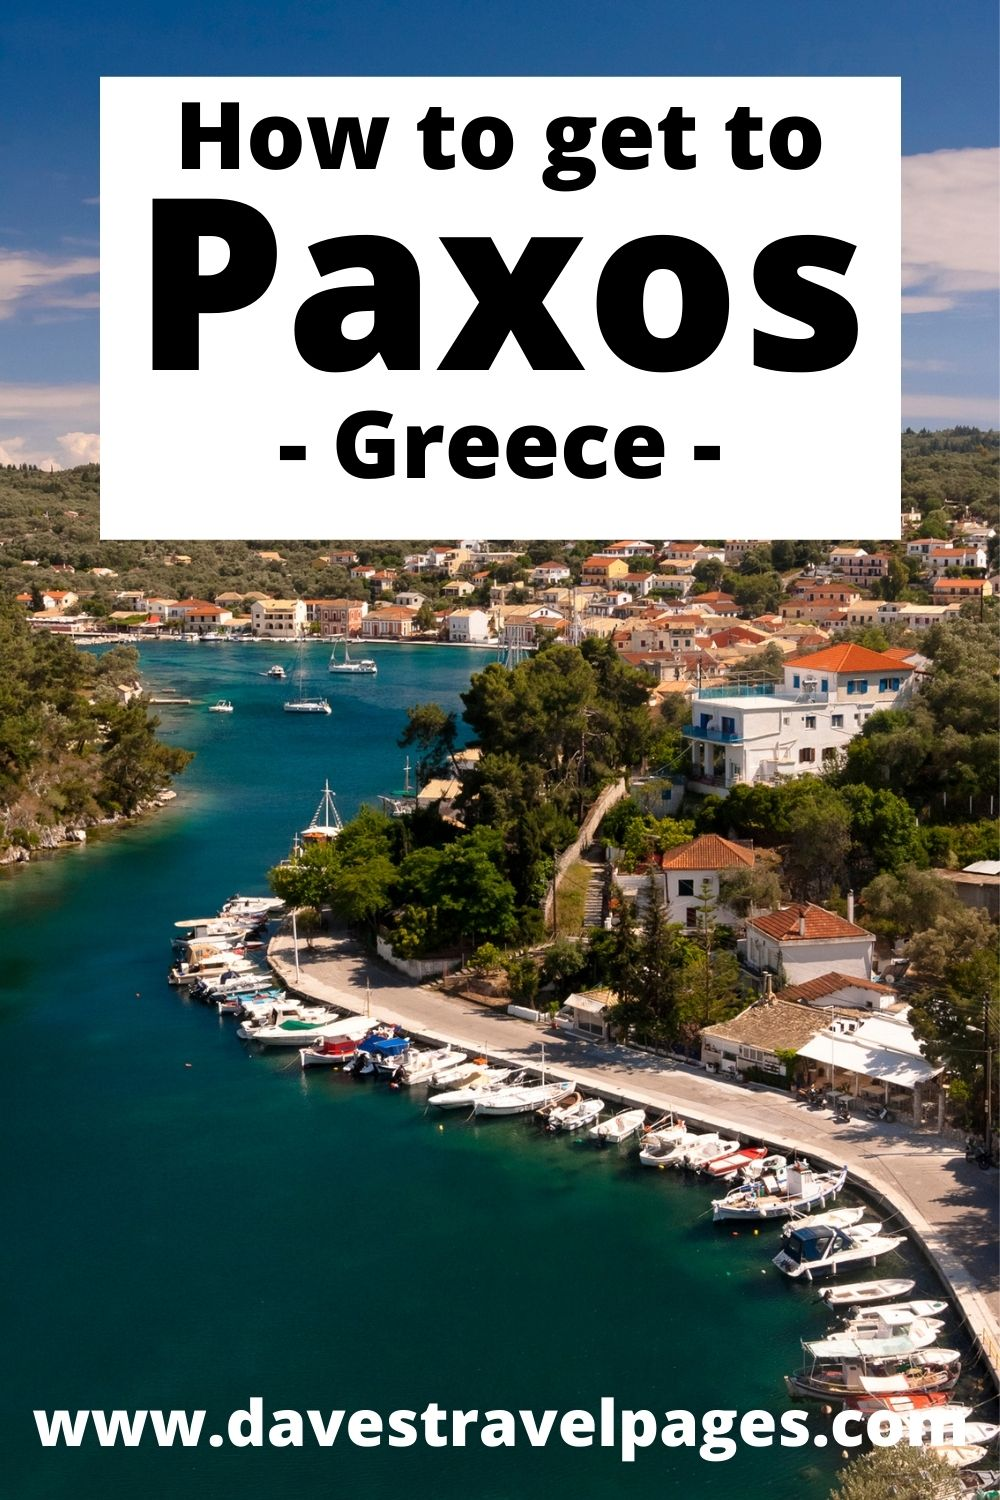 How to get to the Greek island of Paxos